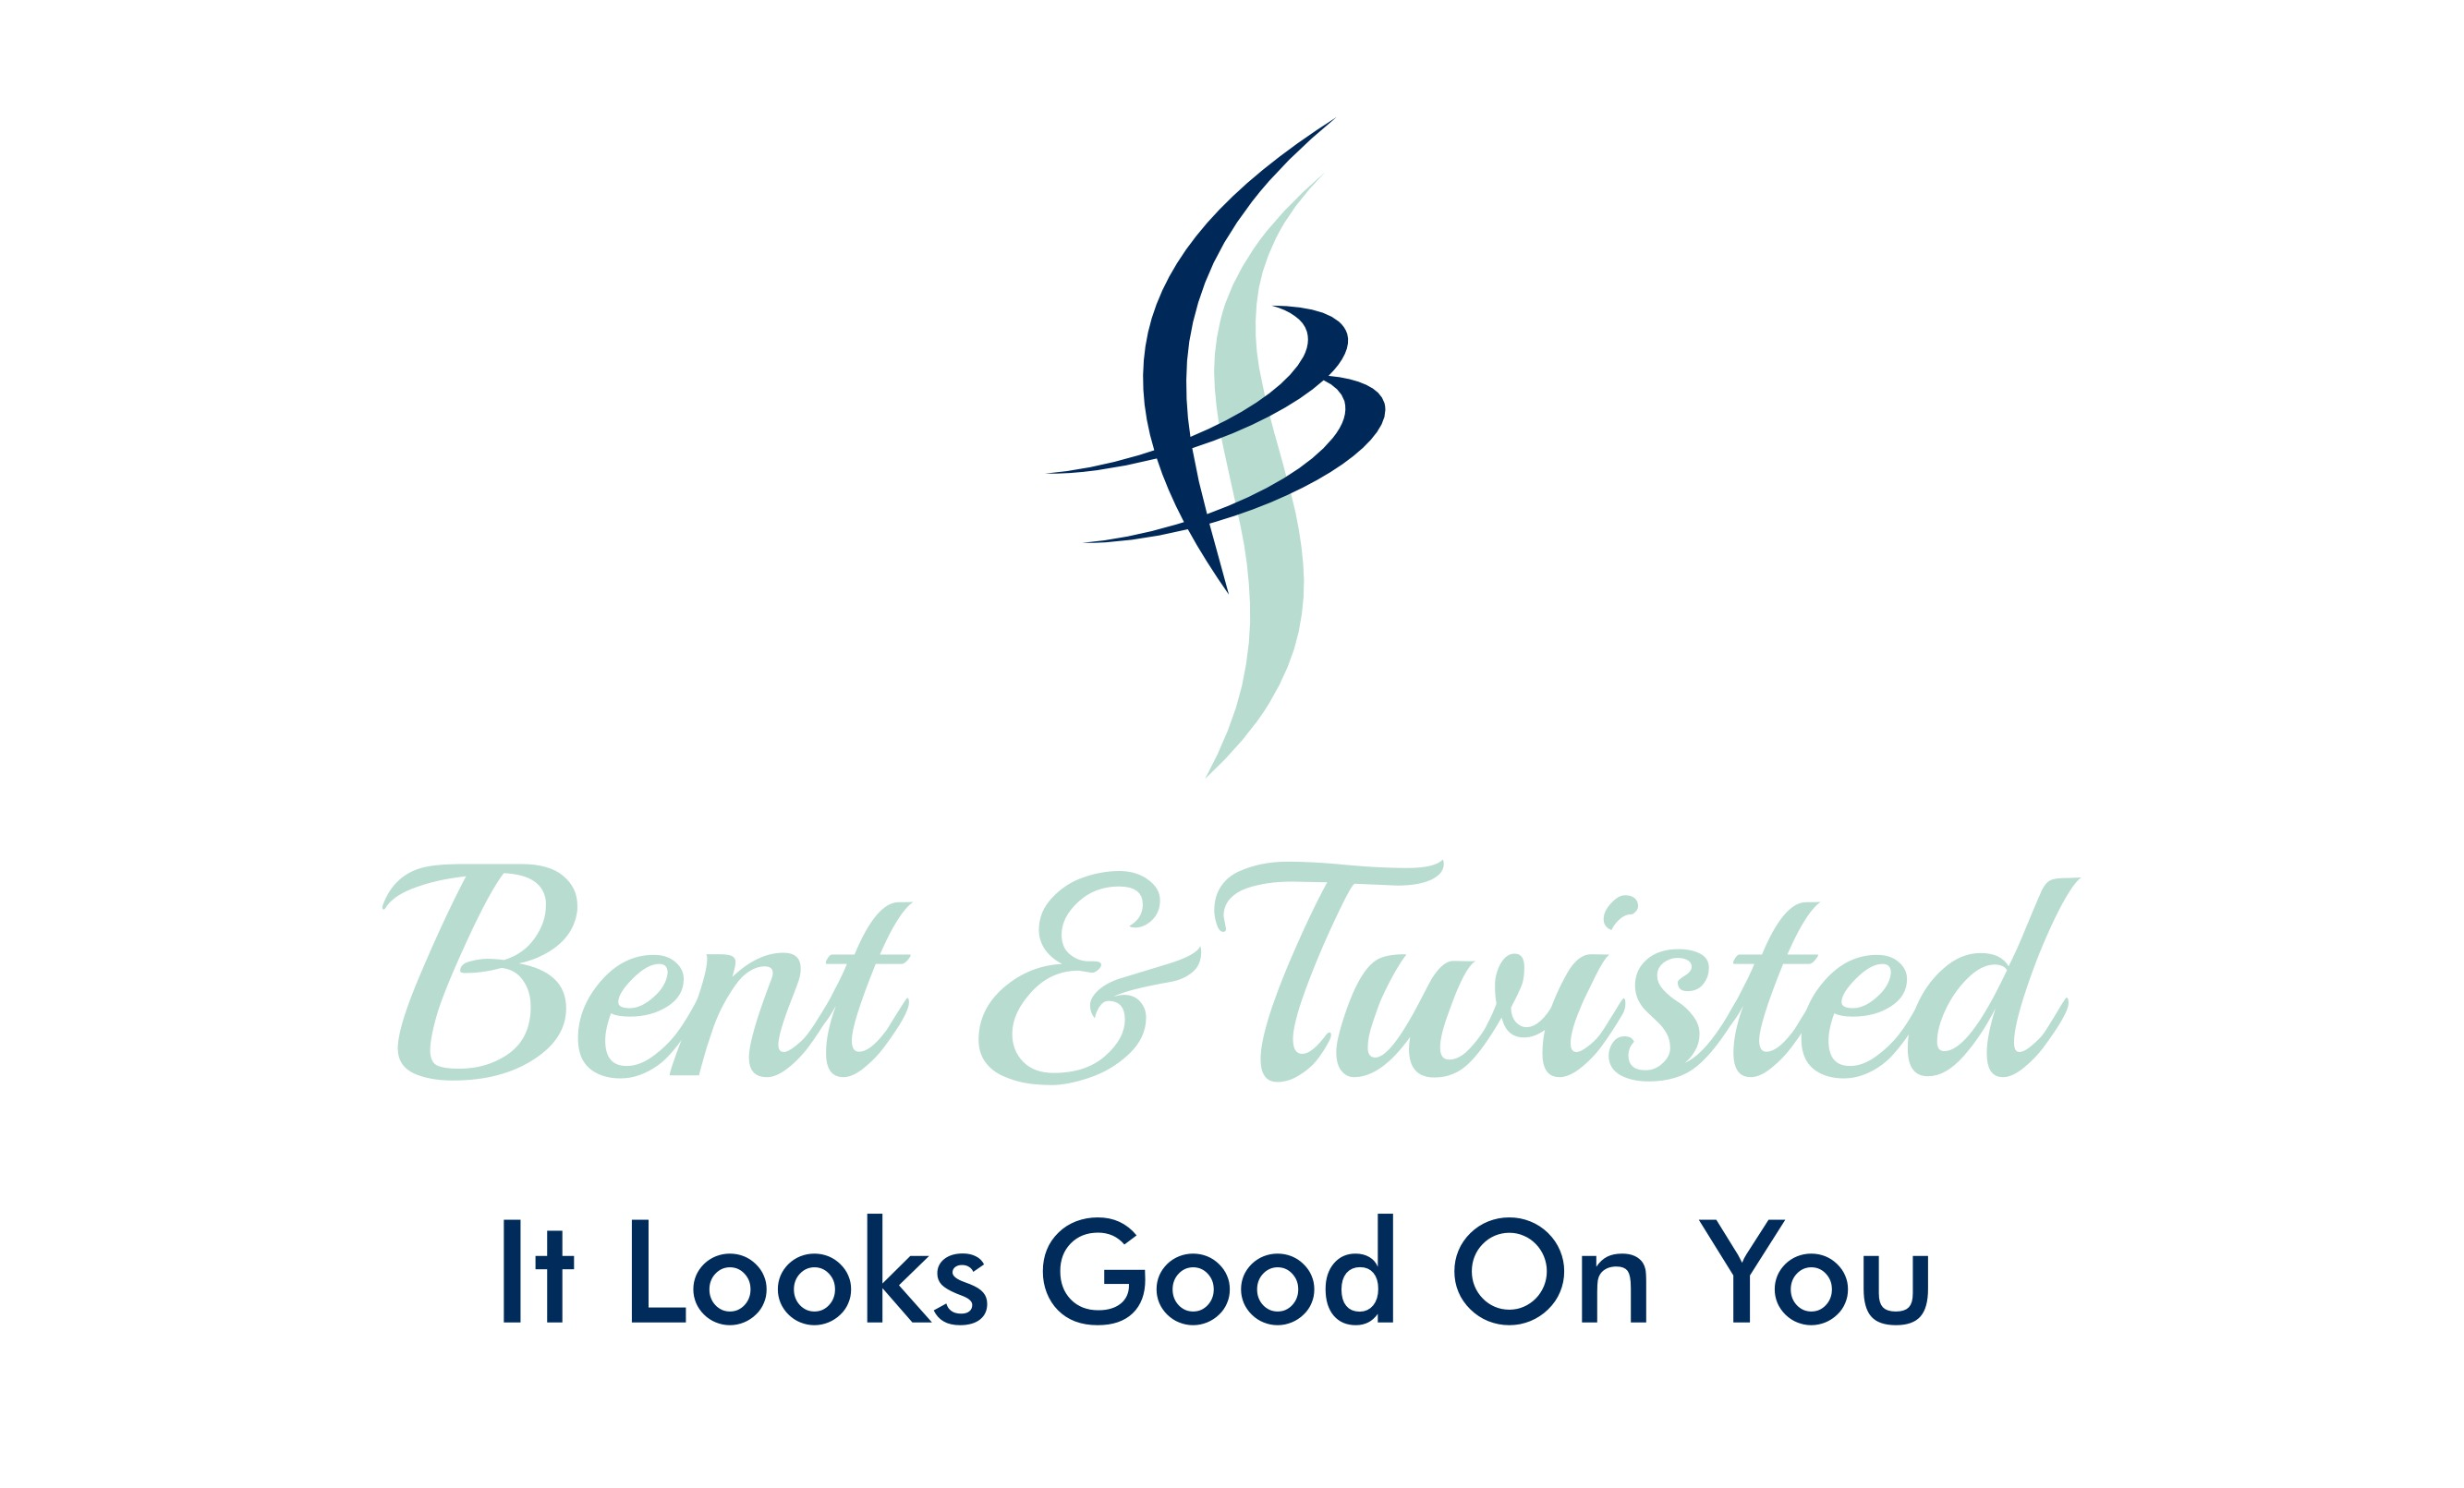 Bent & Twisted - It Looks Good On You